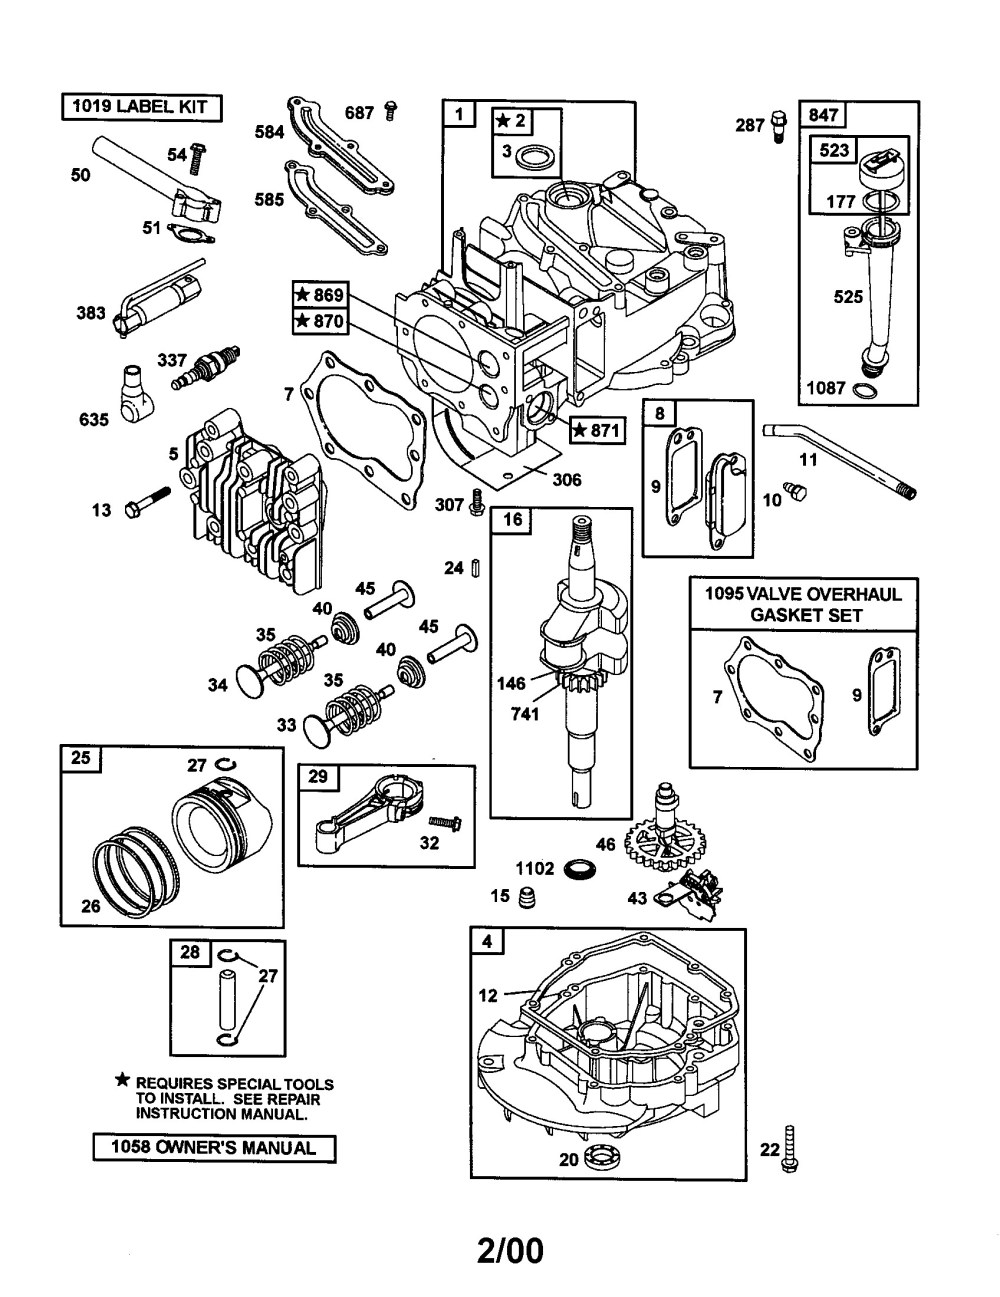 medium resolution of 11 hp briggs and stratton engine diagram amazing briggs stratton engine parts diagram ideas electrical of